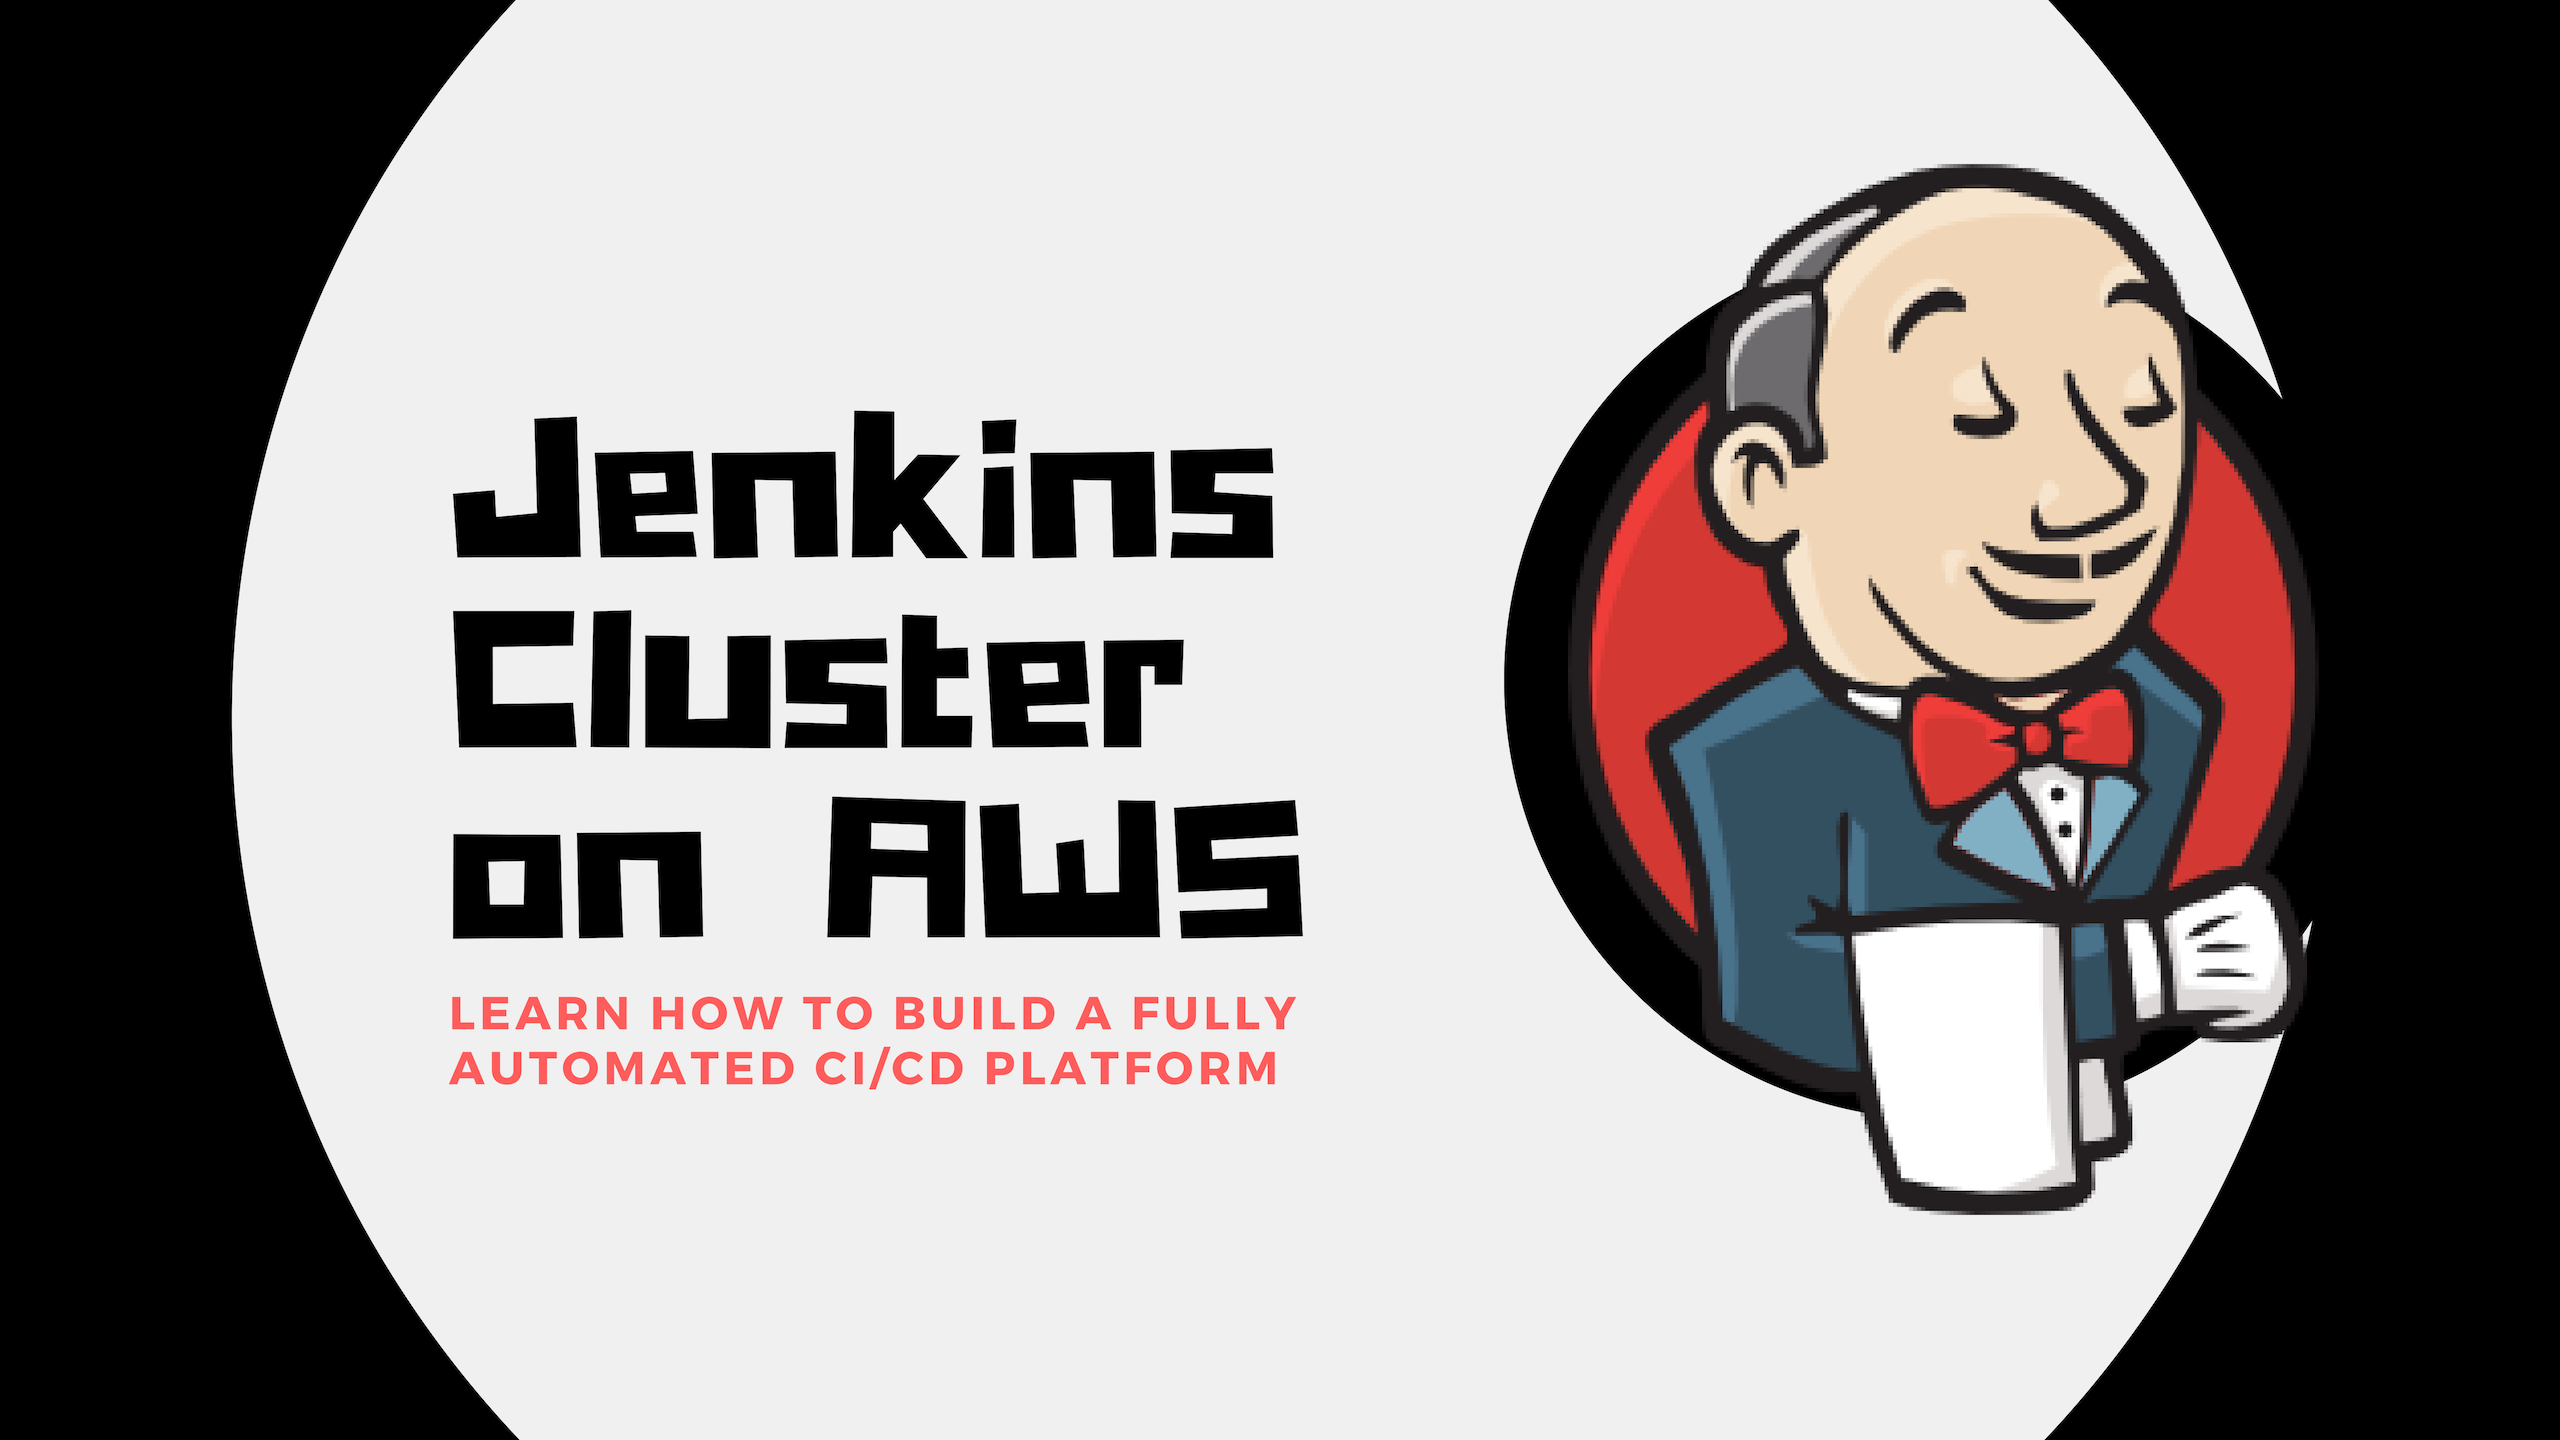 Deploy a Jenkins Cluster on AWS - A Cloud Guru